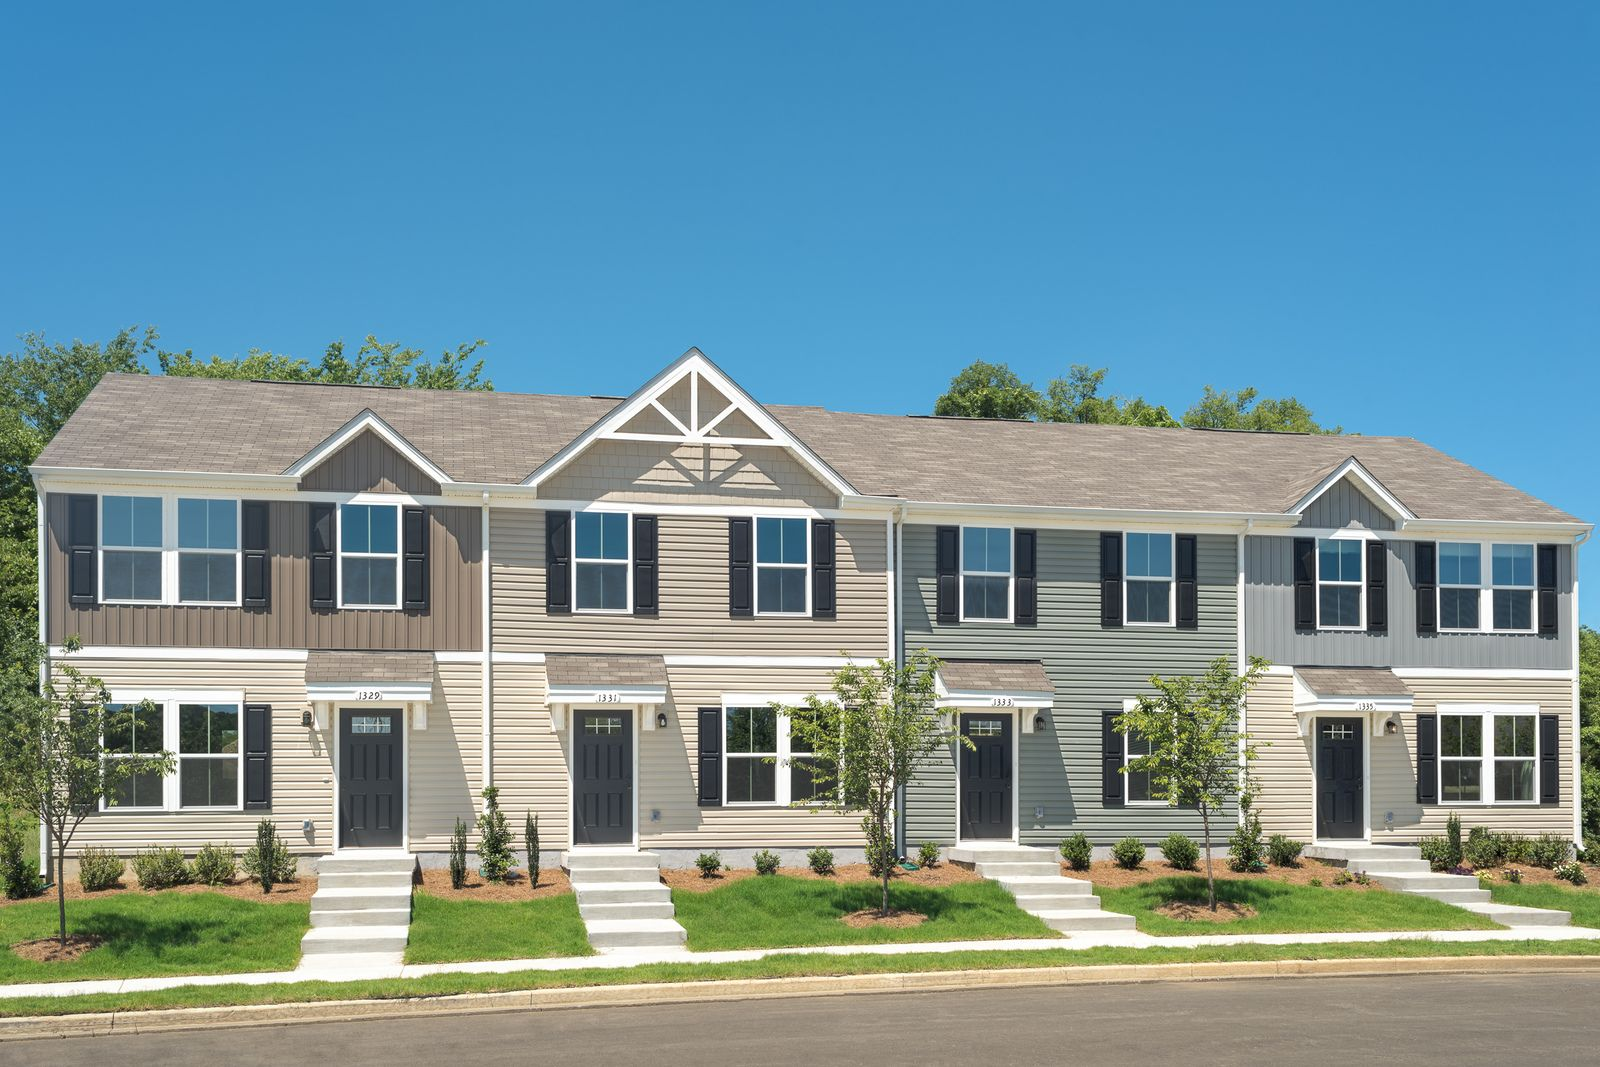 Why rent when you can own less than 1 mile from Wade Hampton Blvd? From the $160s.:Welcome to the area's lowest priced new homes.Join the VIP List to get the lowest pricing available.